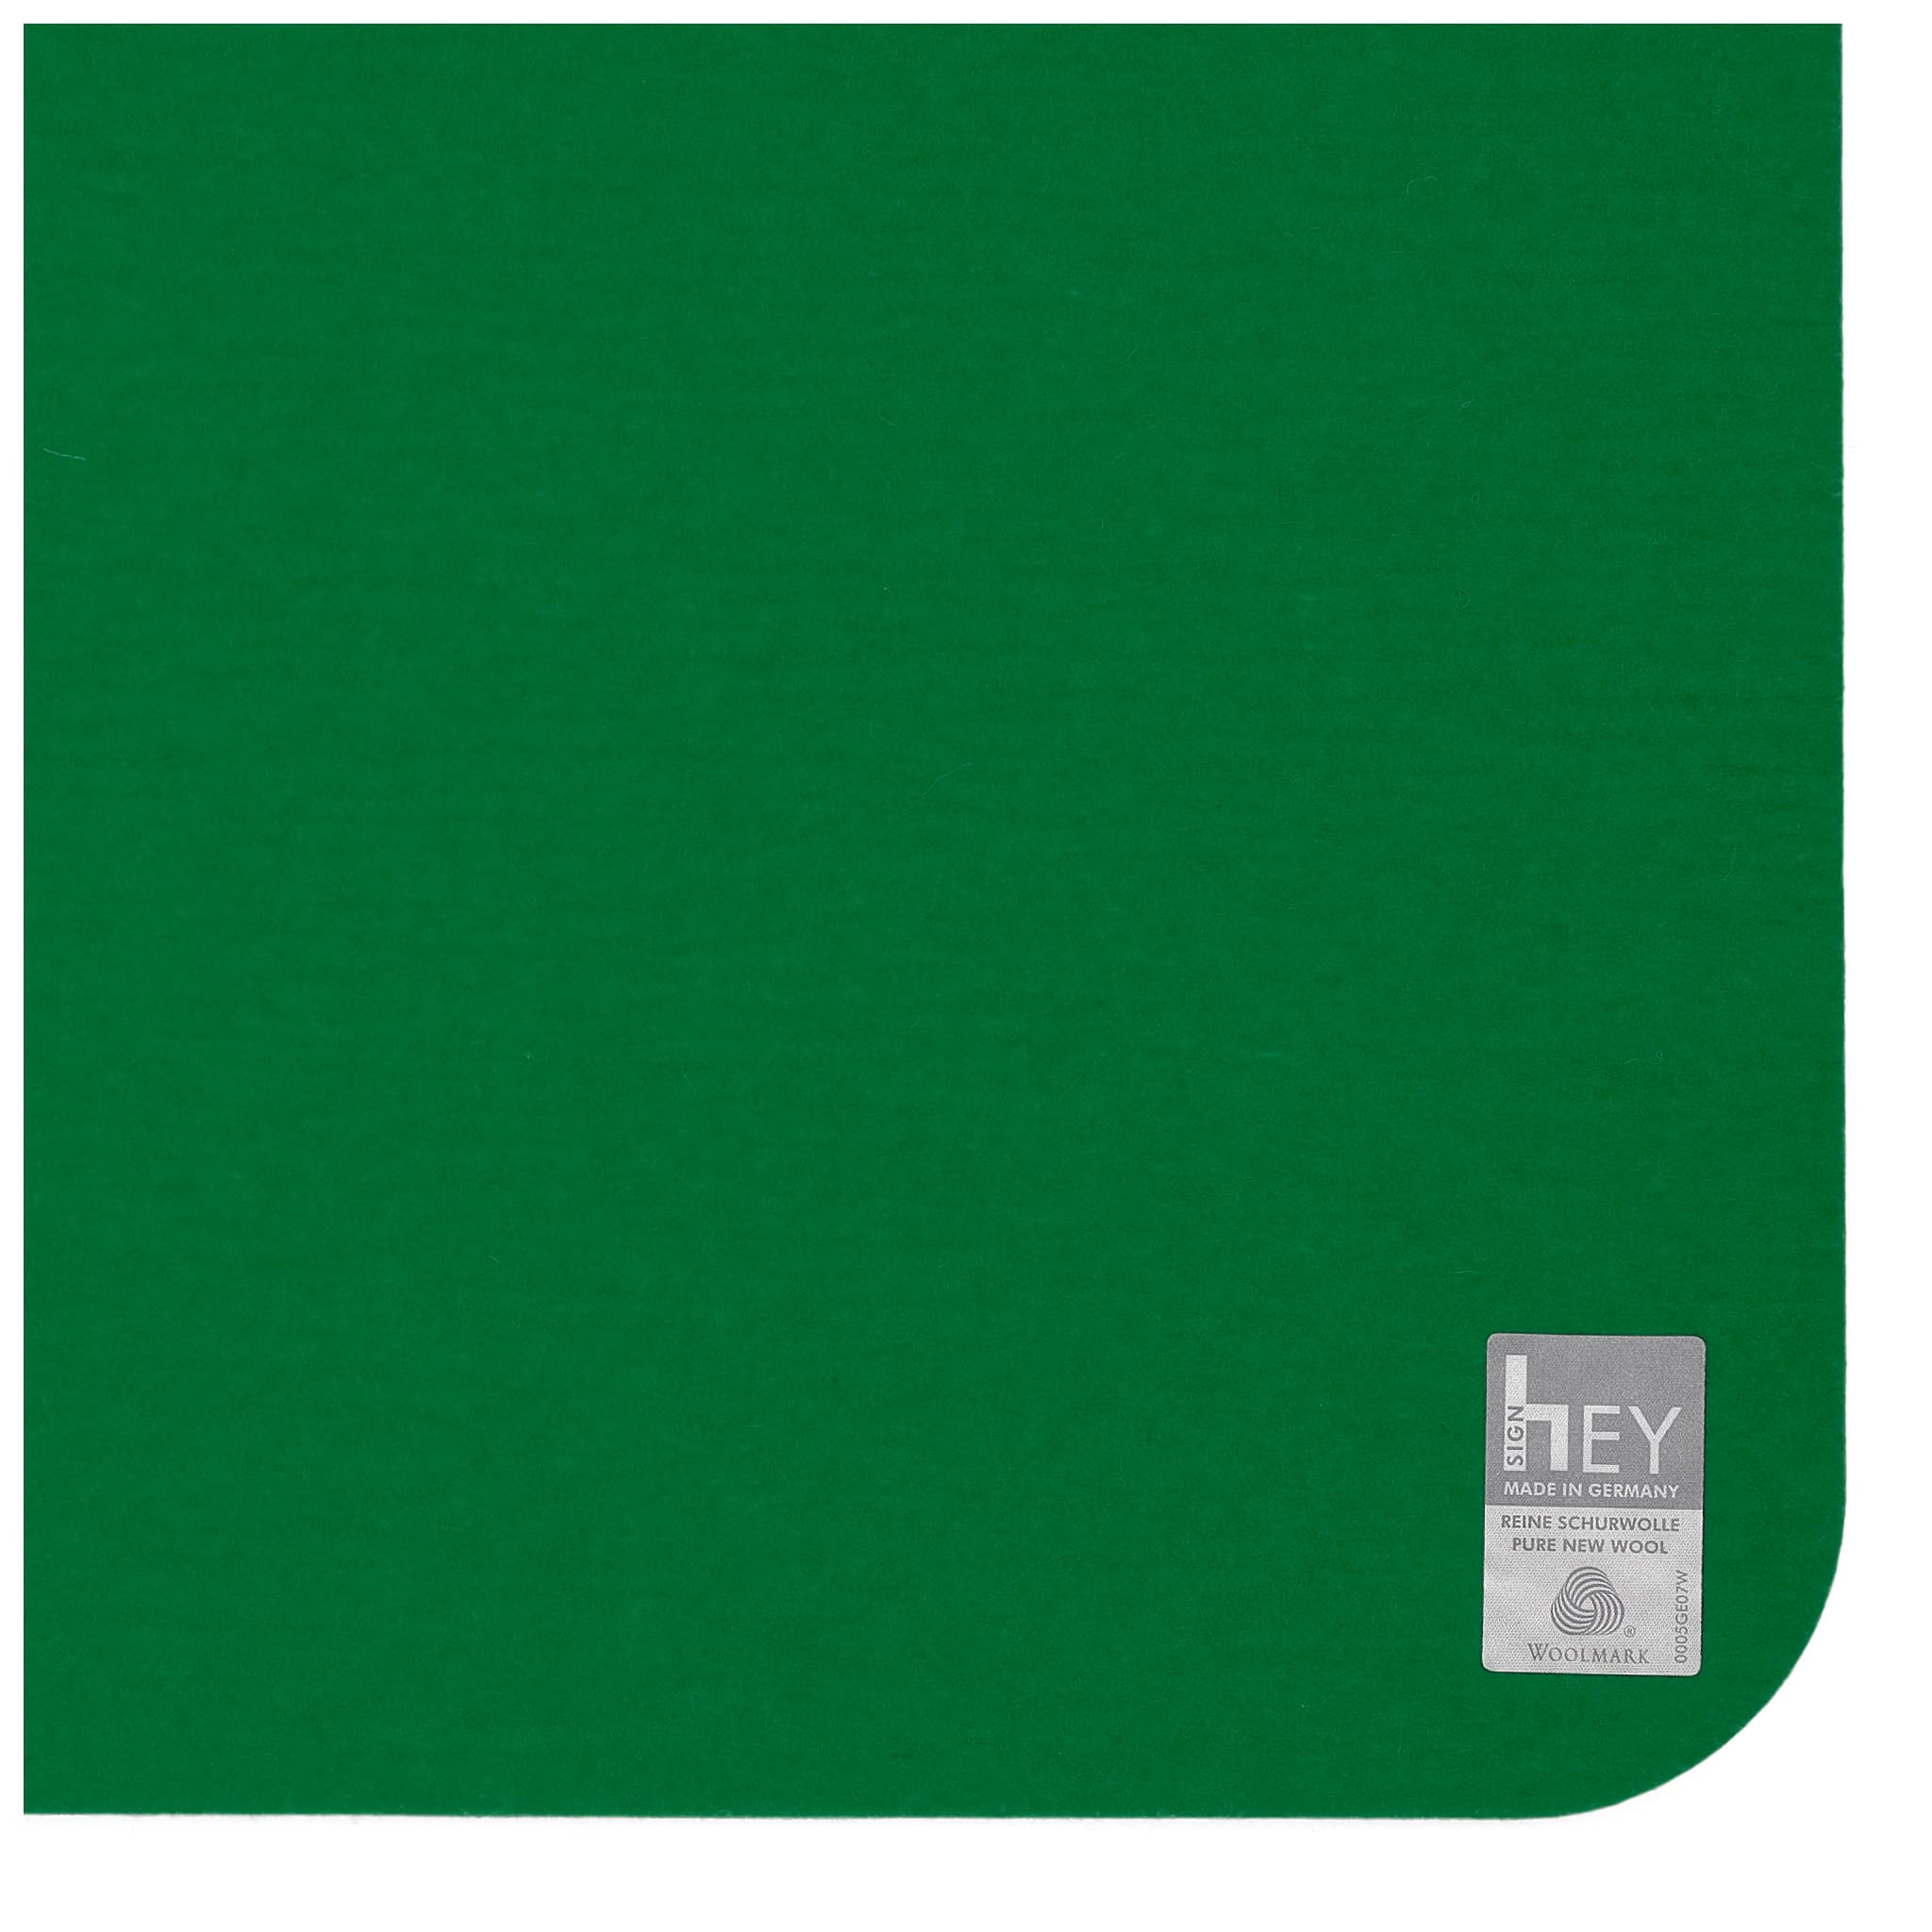 Rectangular Felt Placemat in Dark-Green by Hey-Sign 300134502 looking at Closeup-Label